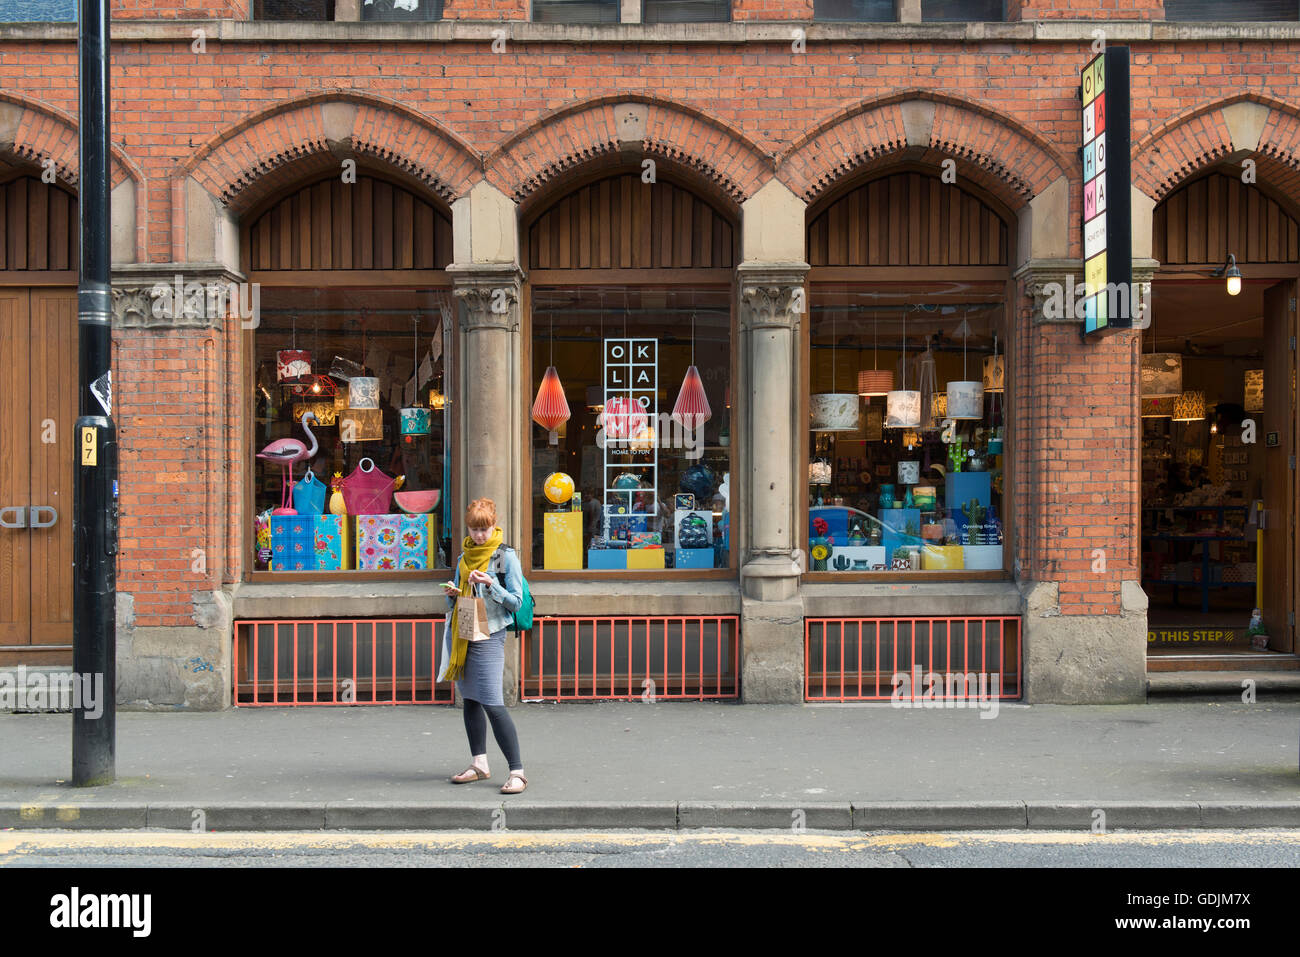 A girl waits outside Oklahoma gift shop located on High Street in the Northern Quarter area of Manchester. - Stock Image